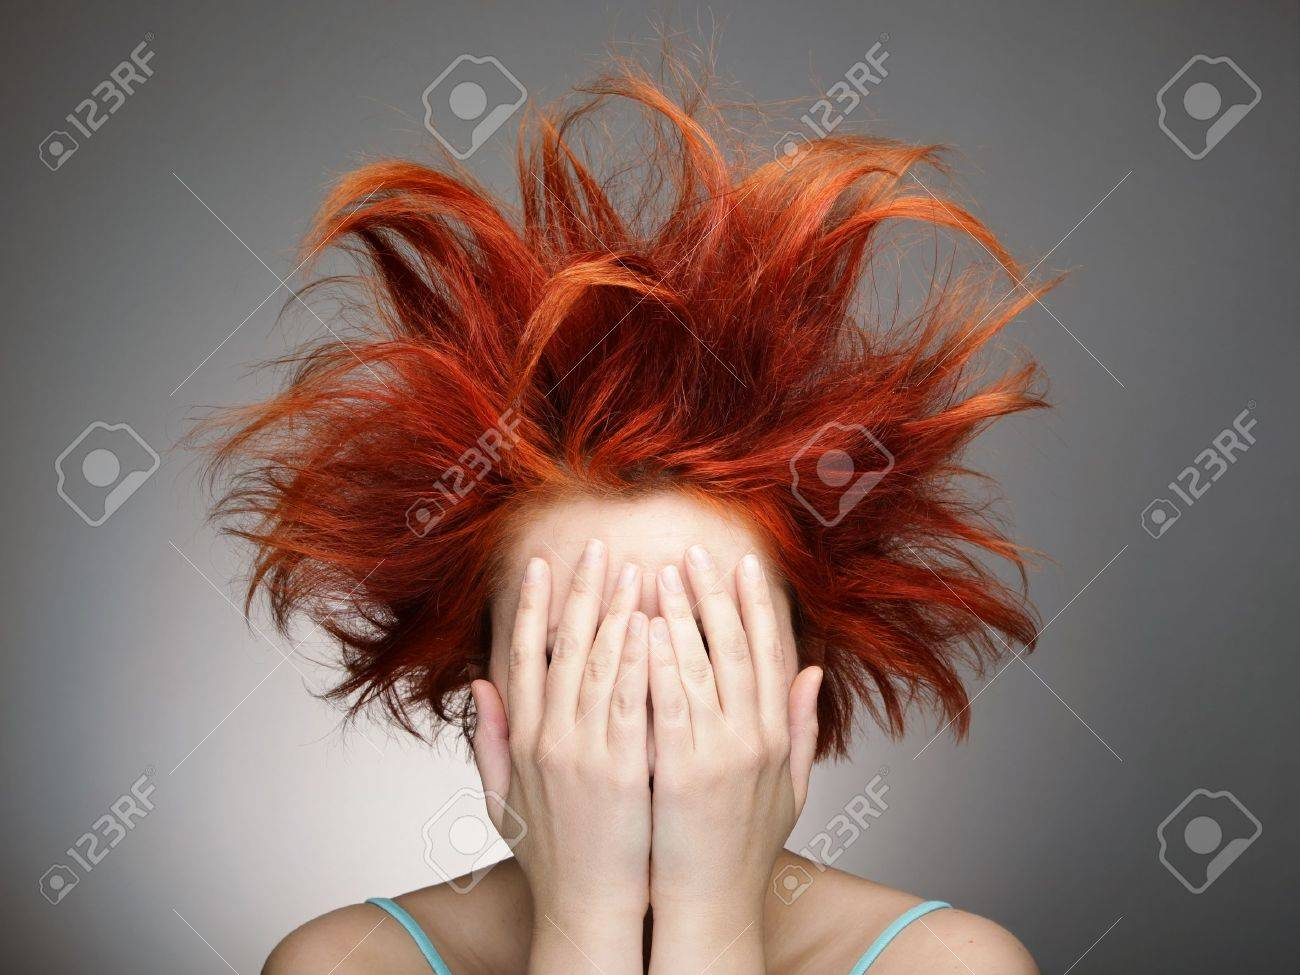 Redhead with messy hair covering her face with hands Stock Photo - 11889927